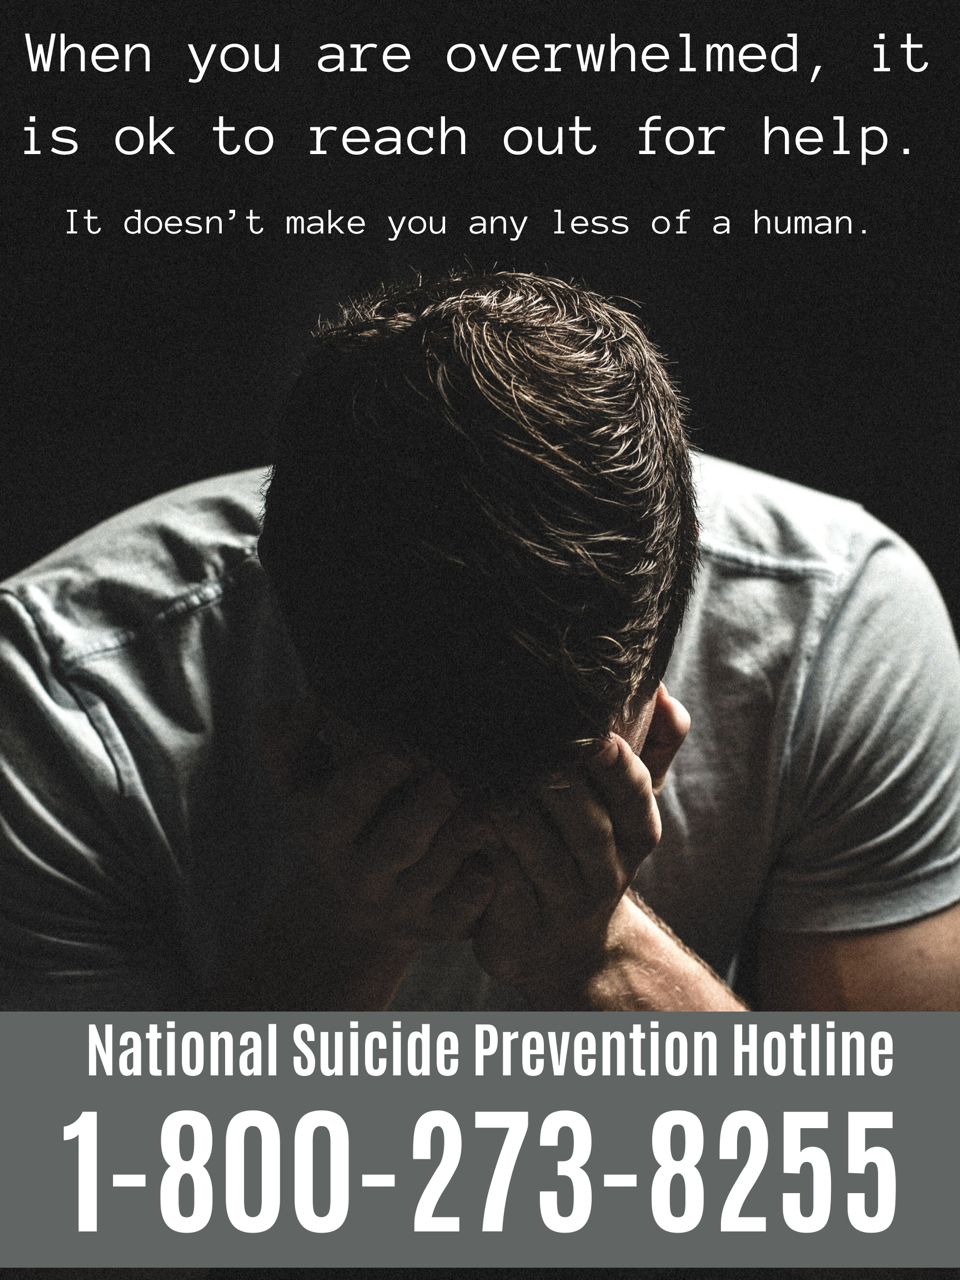 When you are overwhelmed, it is ok to reach out for help. It doesn't make you any less of a human. National Suicide Prevention Hotline is 1-800-273-8255